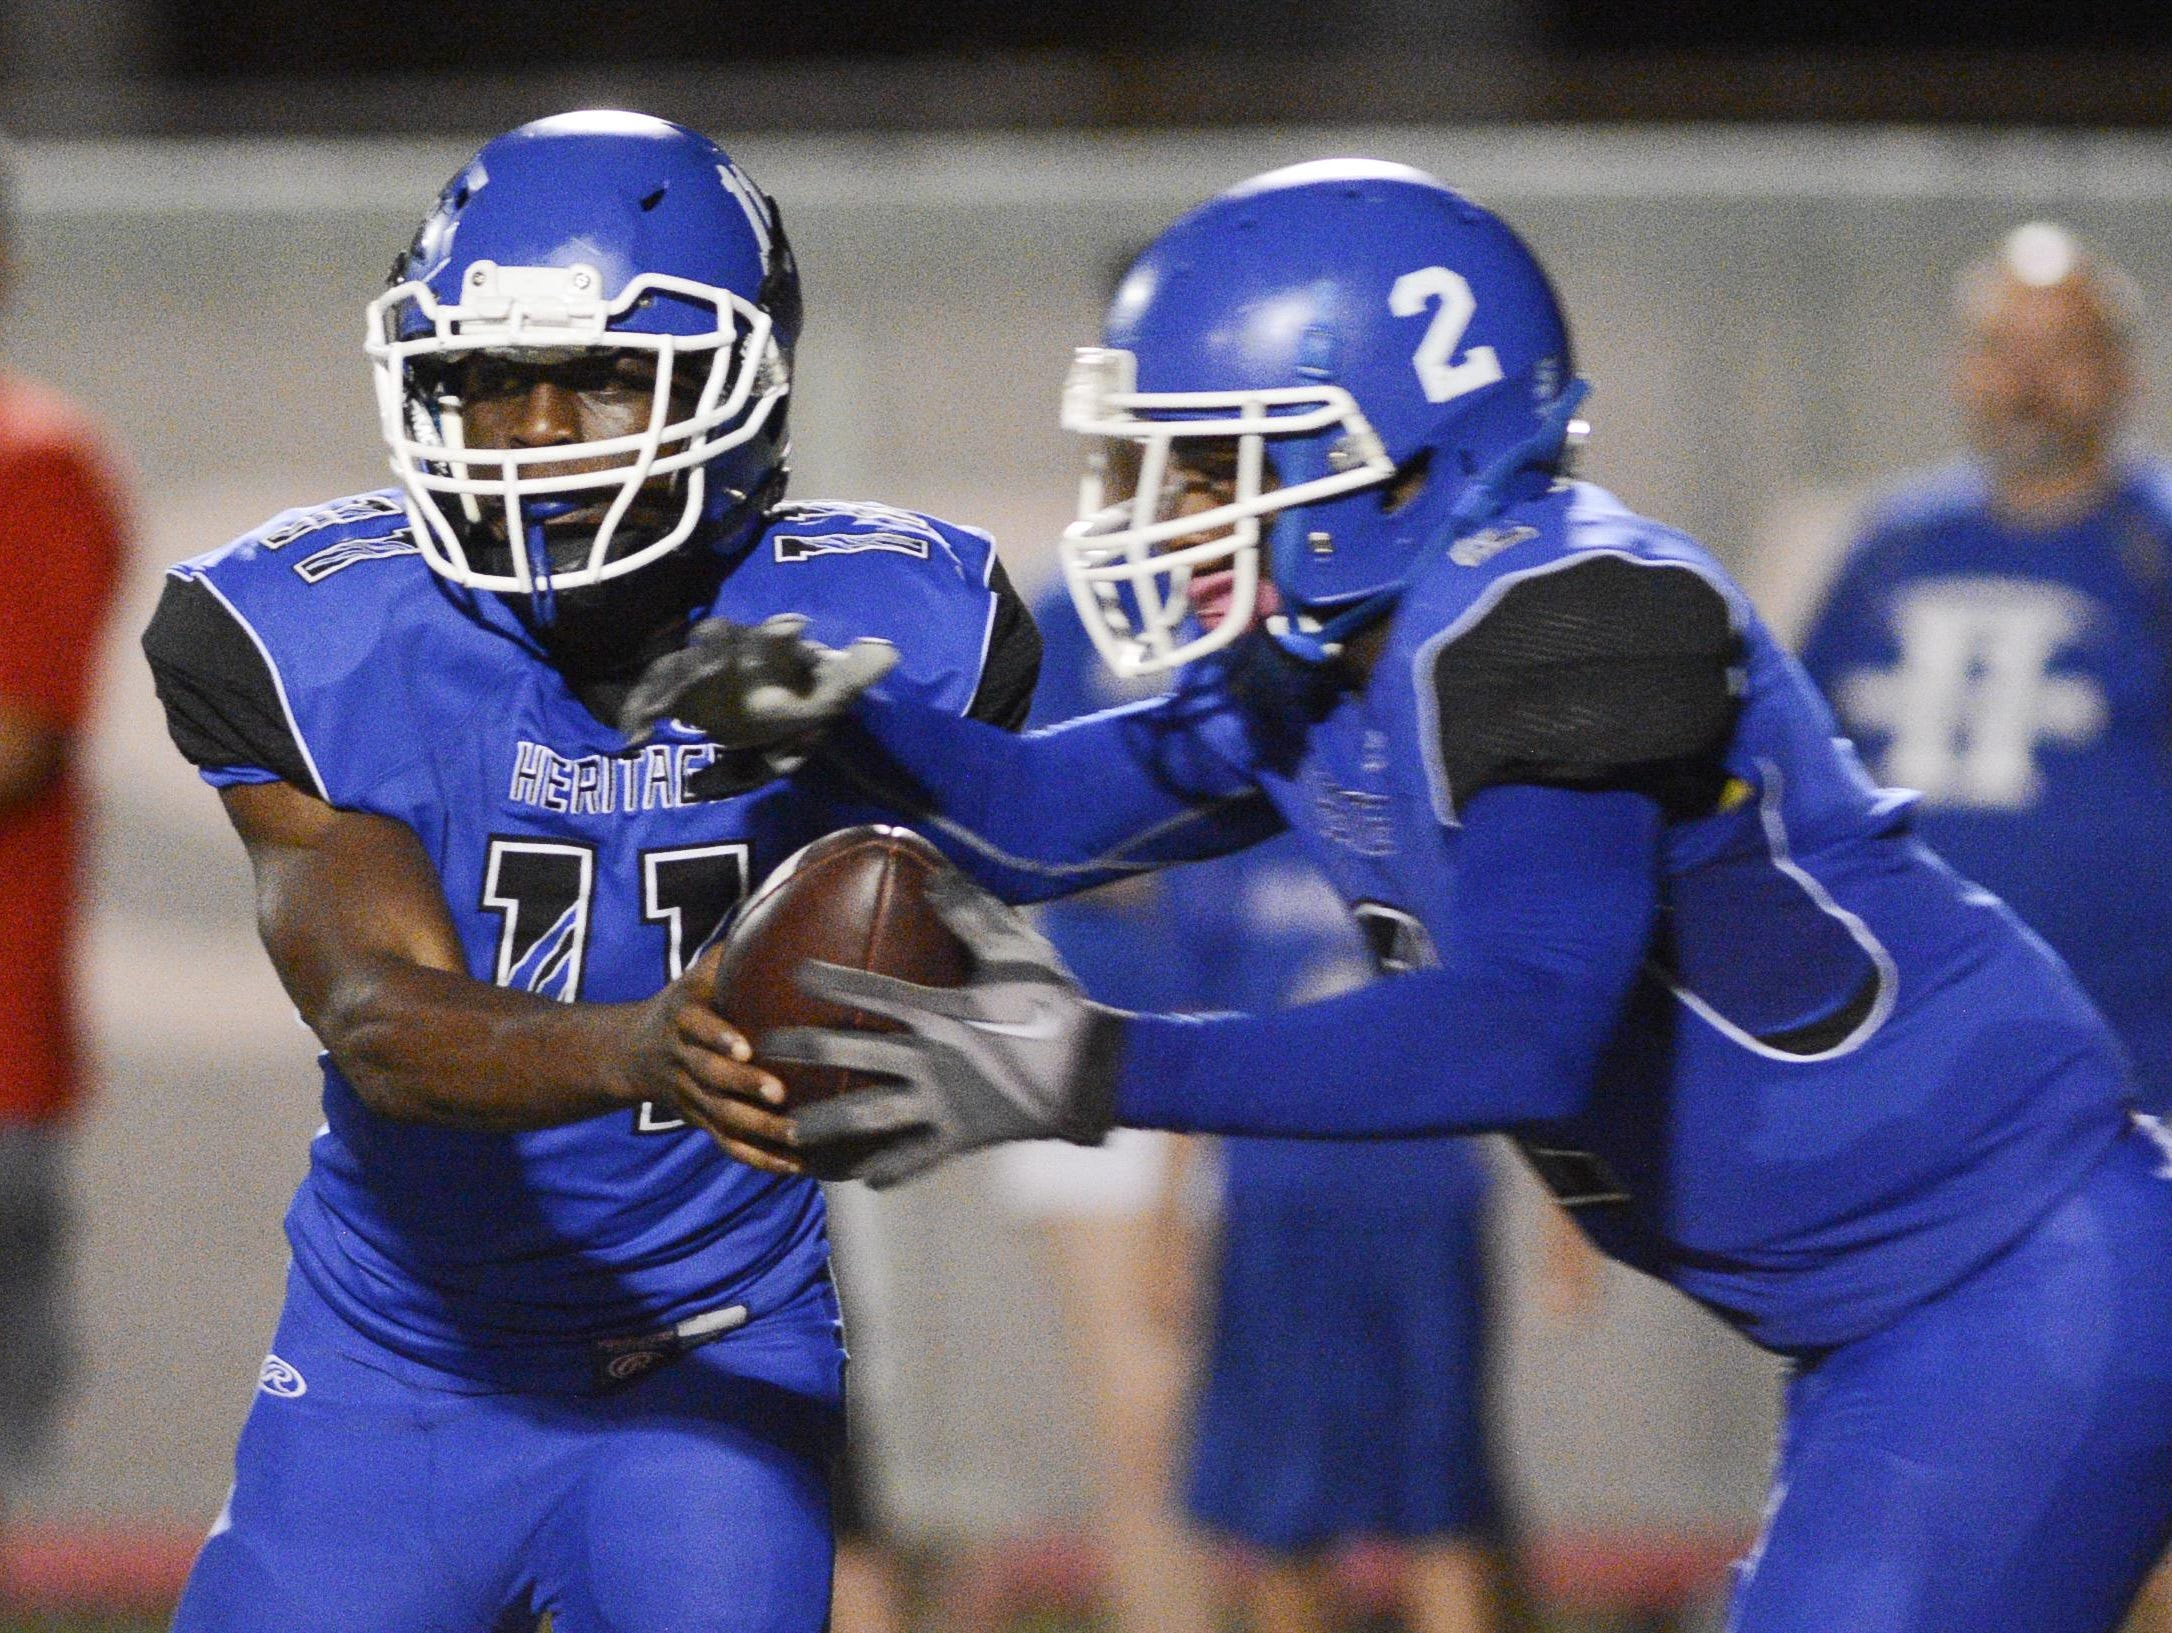 Heritage High hosted Deltona is a Class 6A regional quarterfinal on Friday night in Palm Bay.